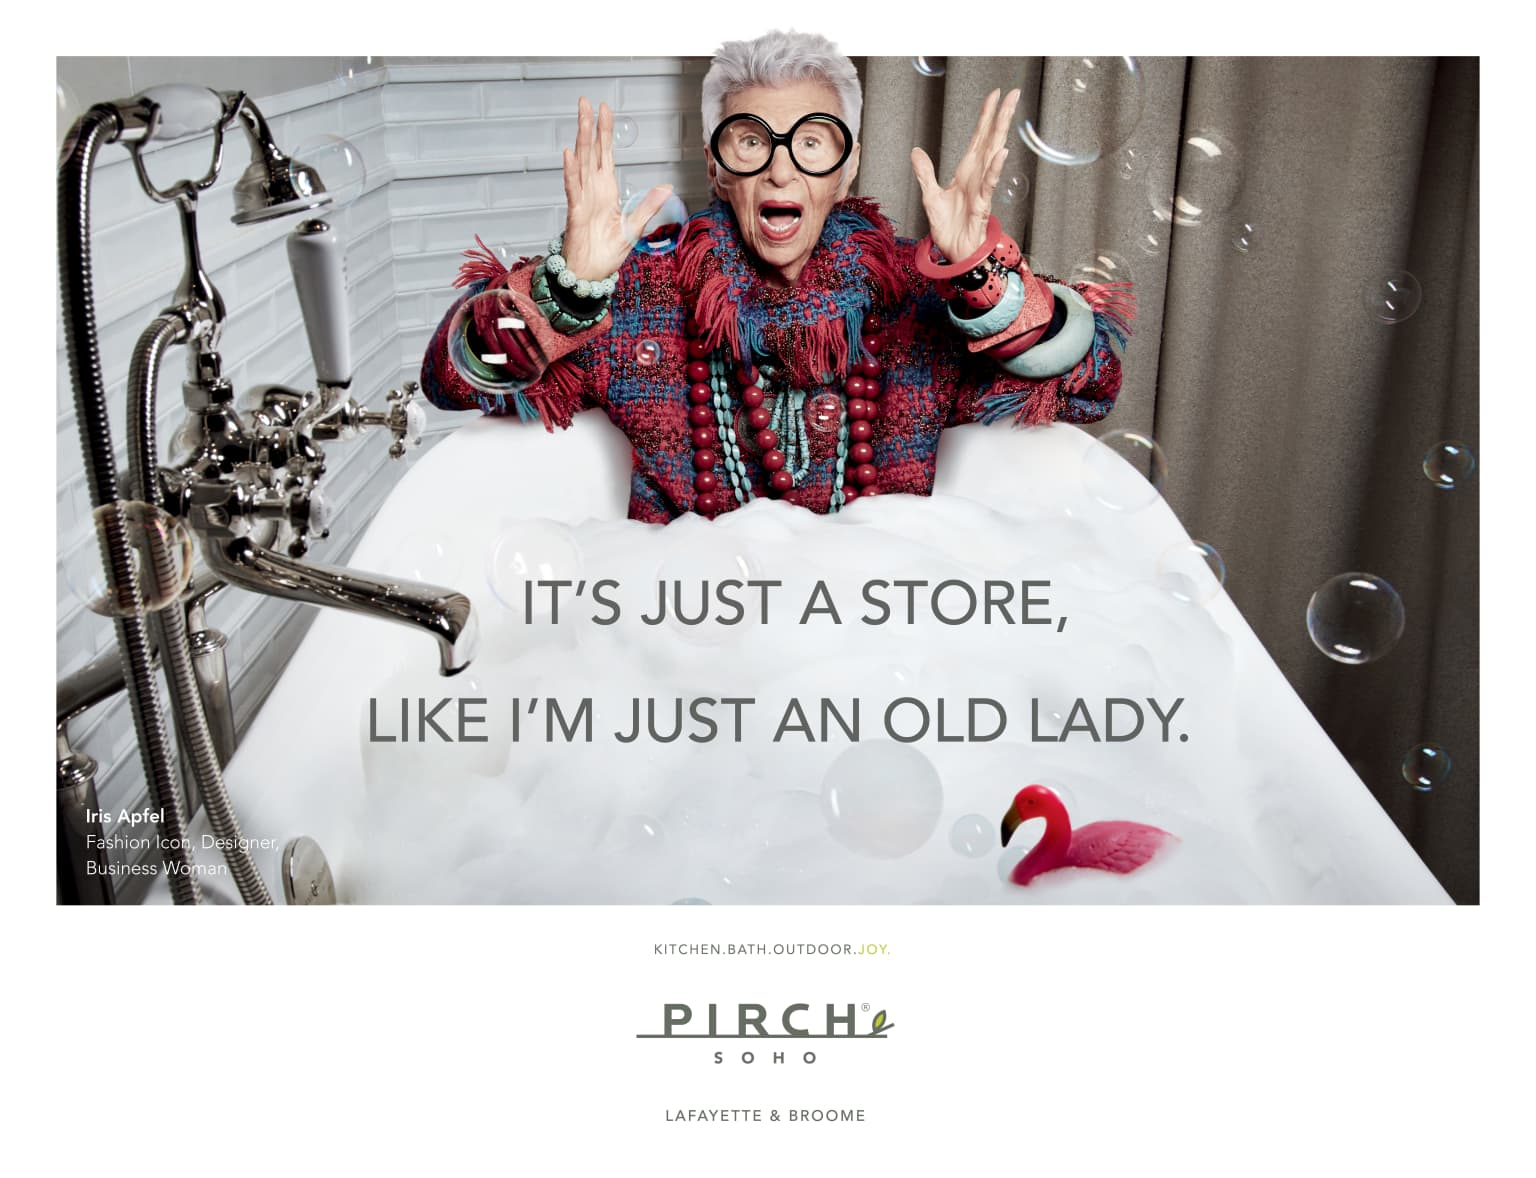 PIRCH: It's Just a Store